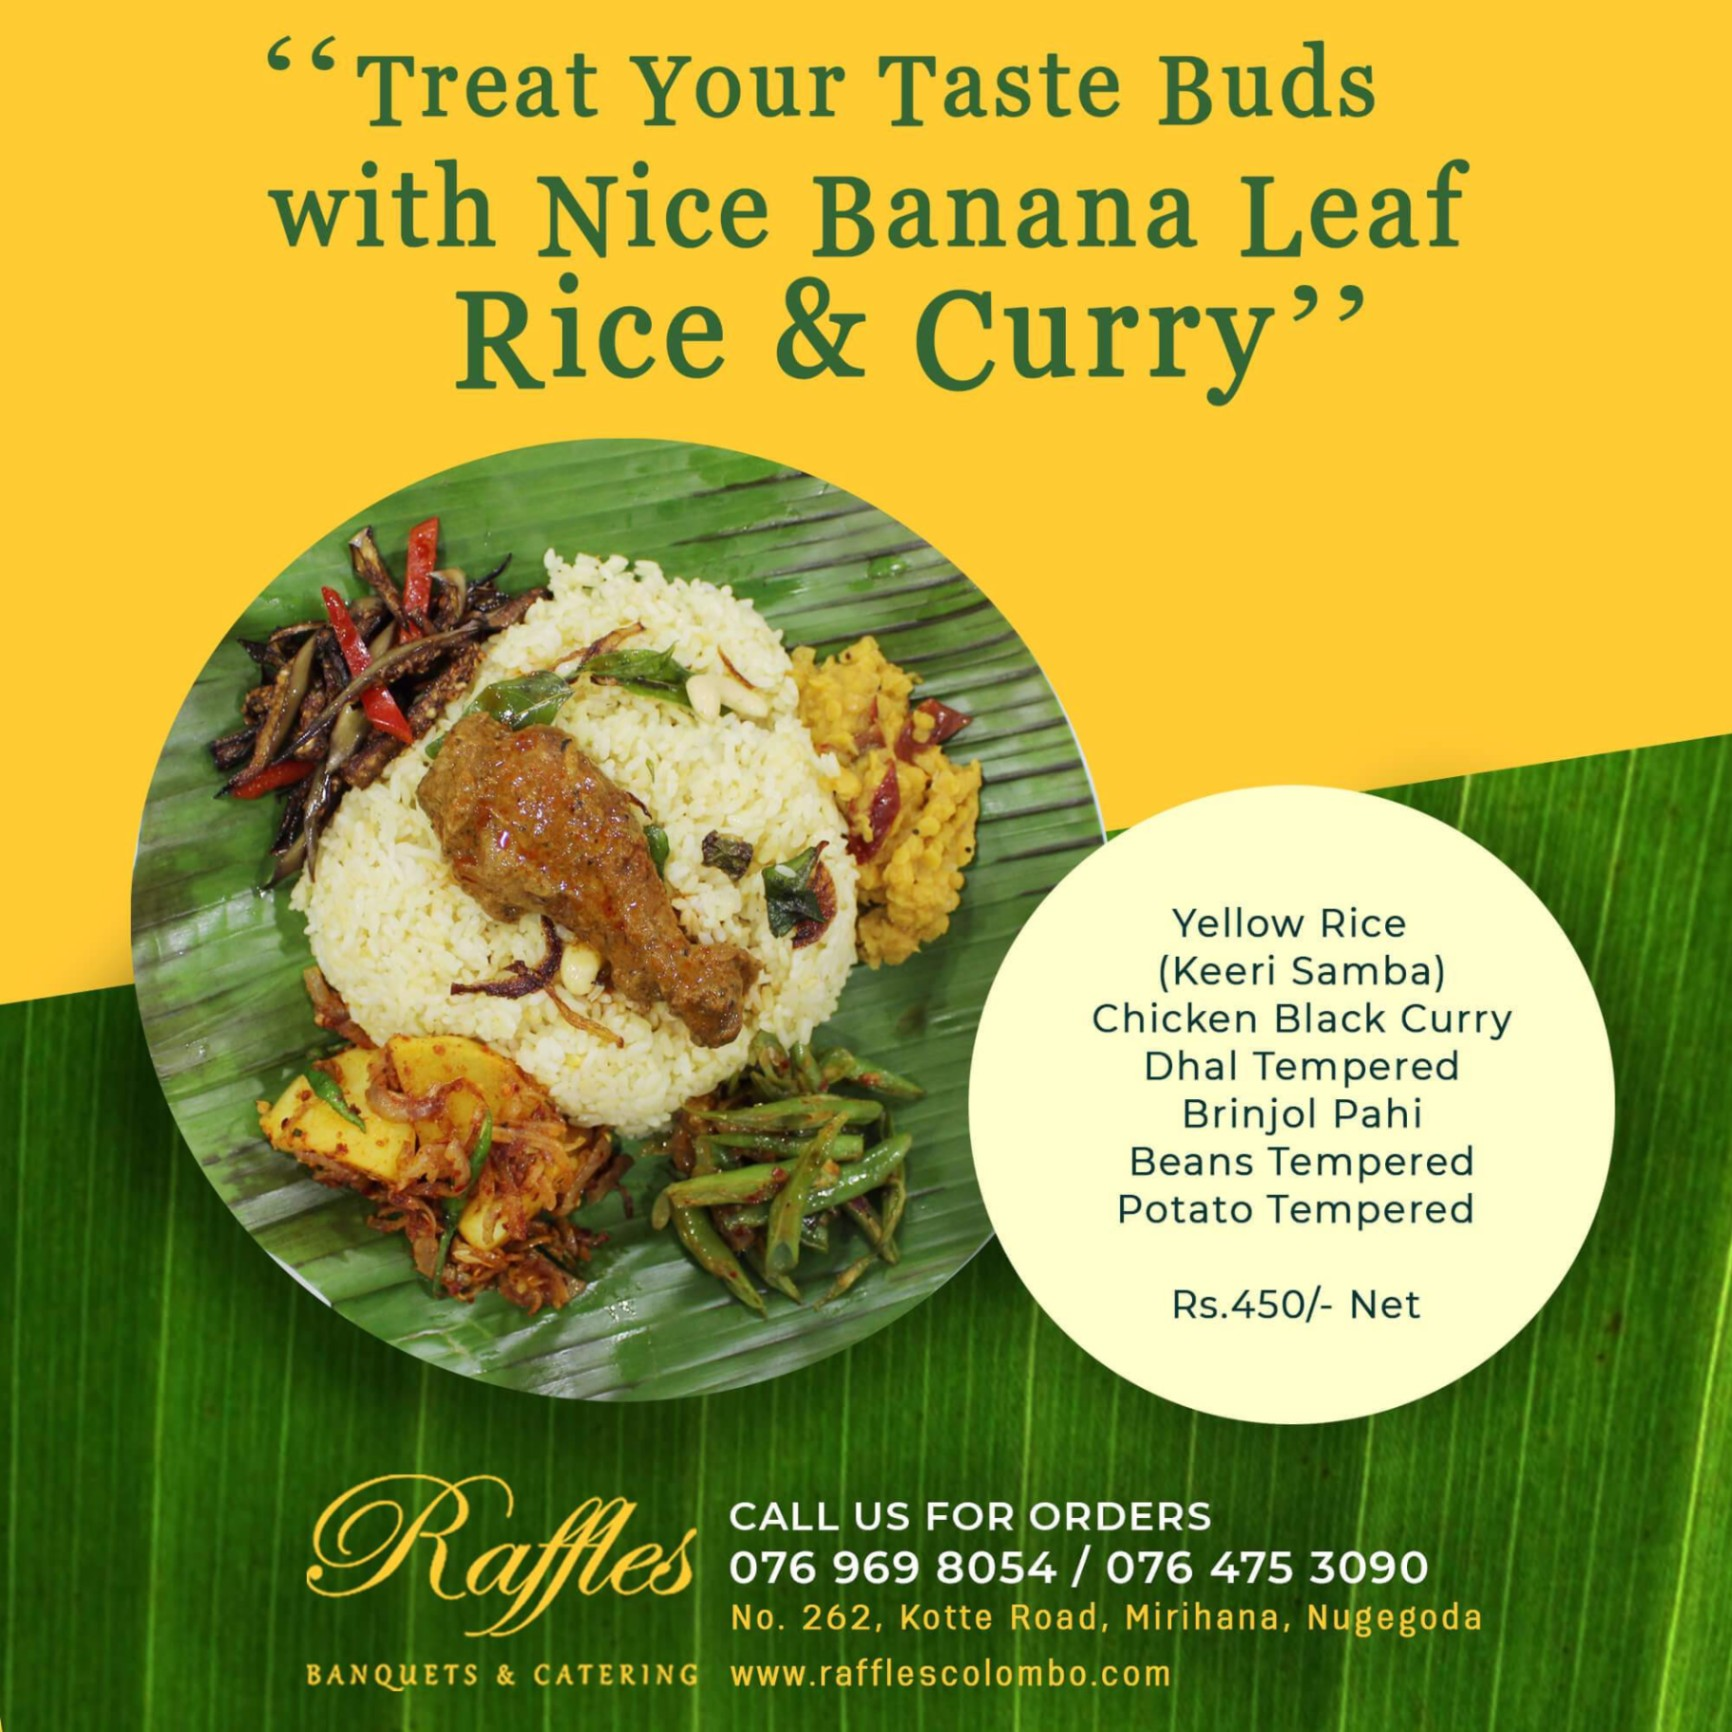 Treat Your Taste Buds with Nice Banana Leaf Rice & Curry